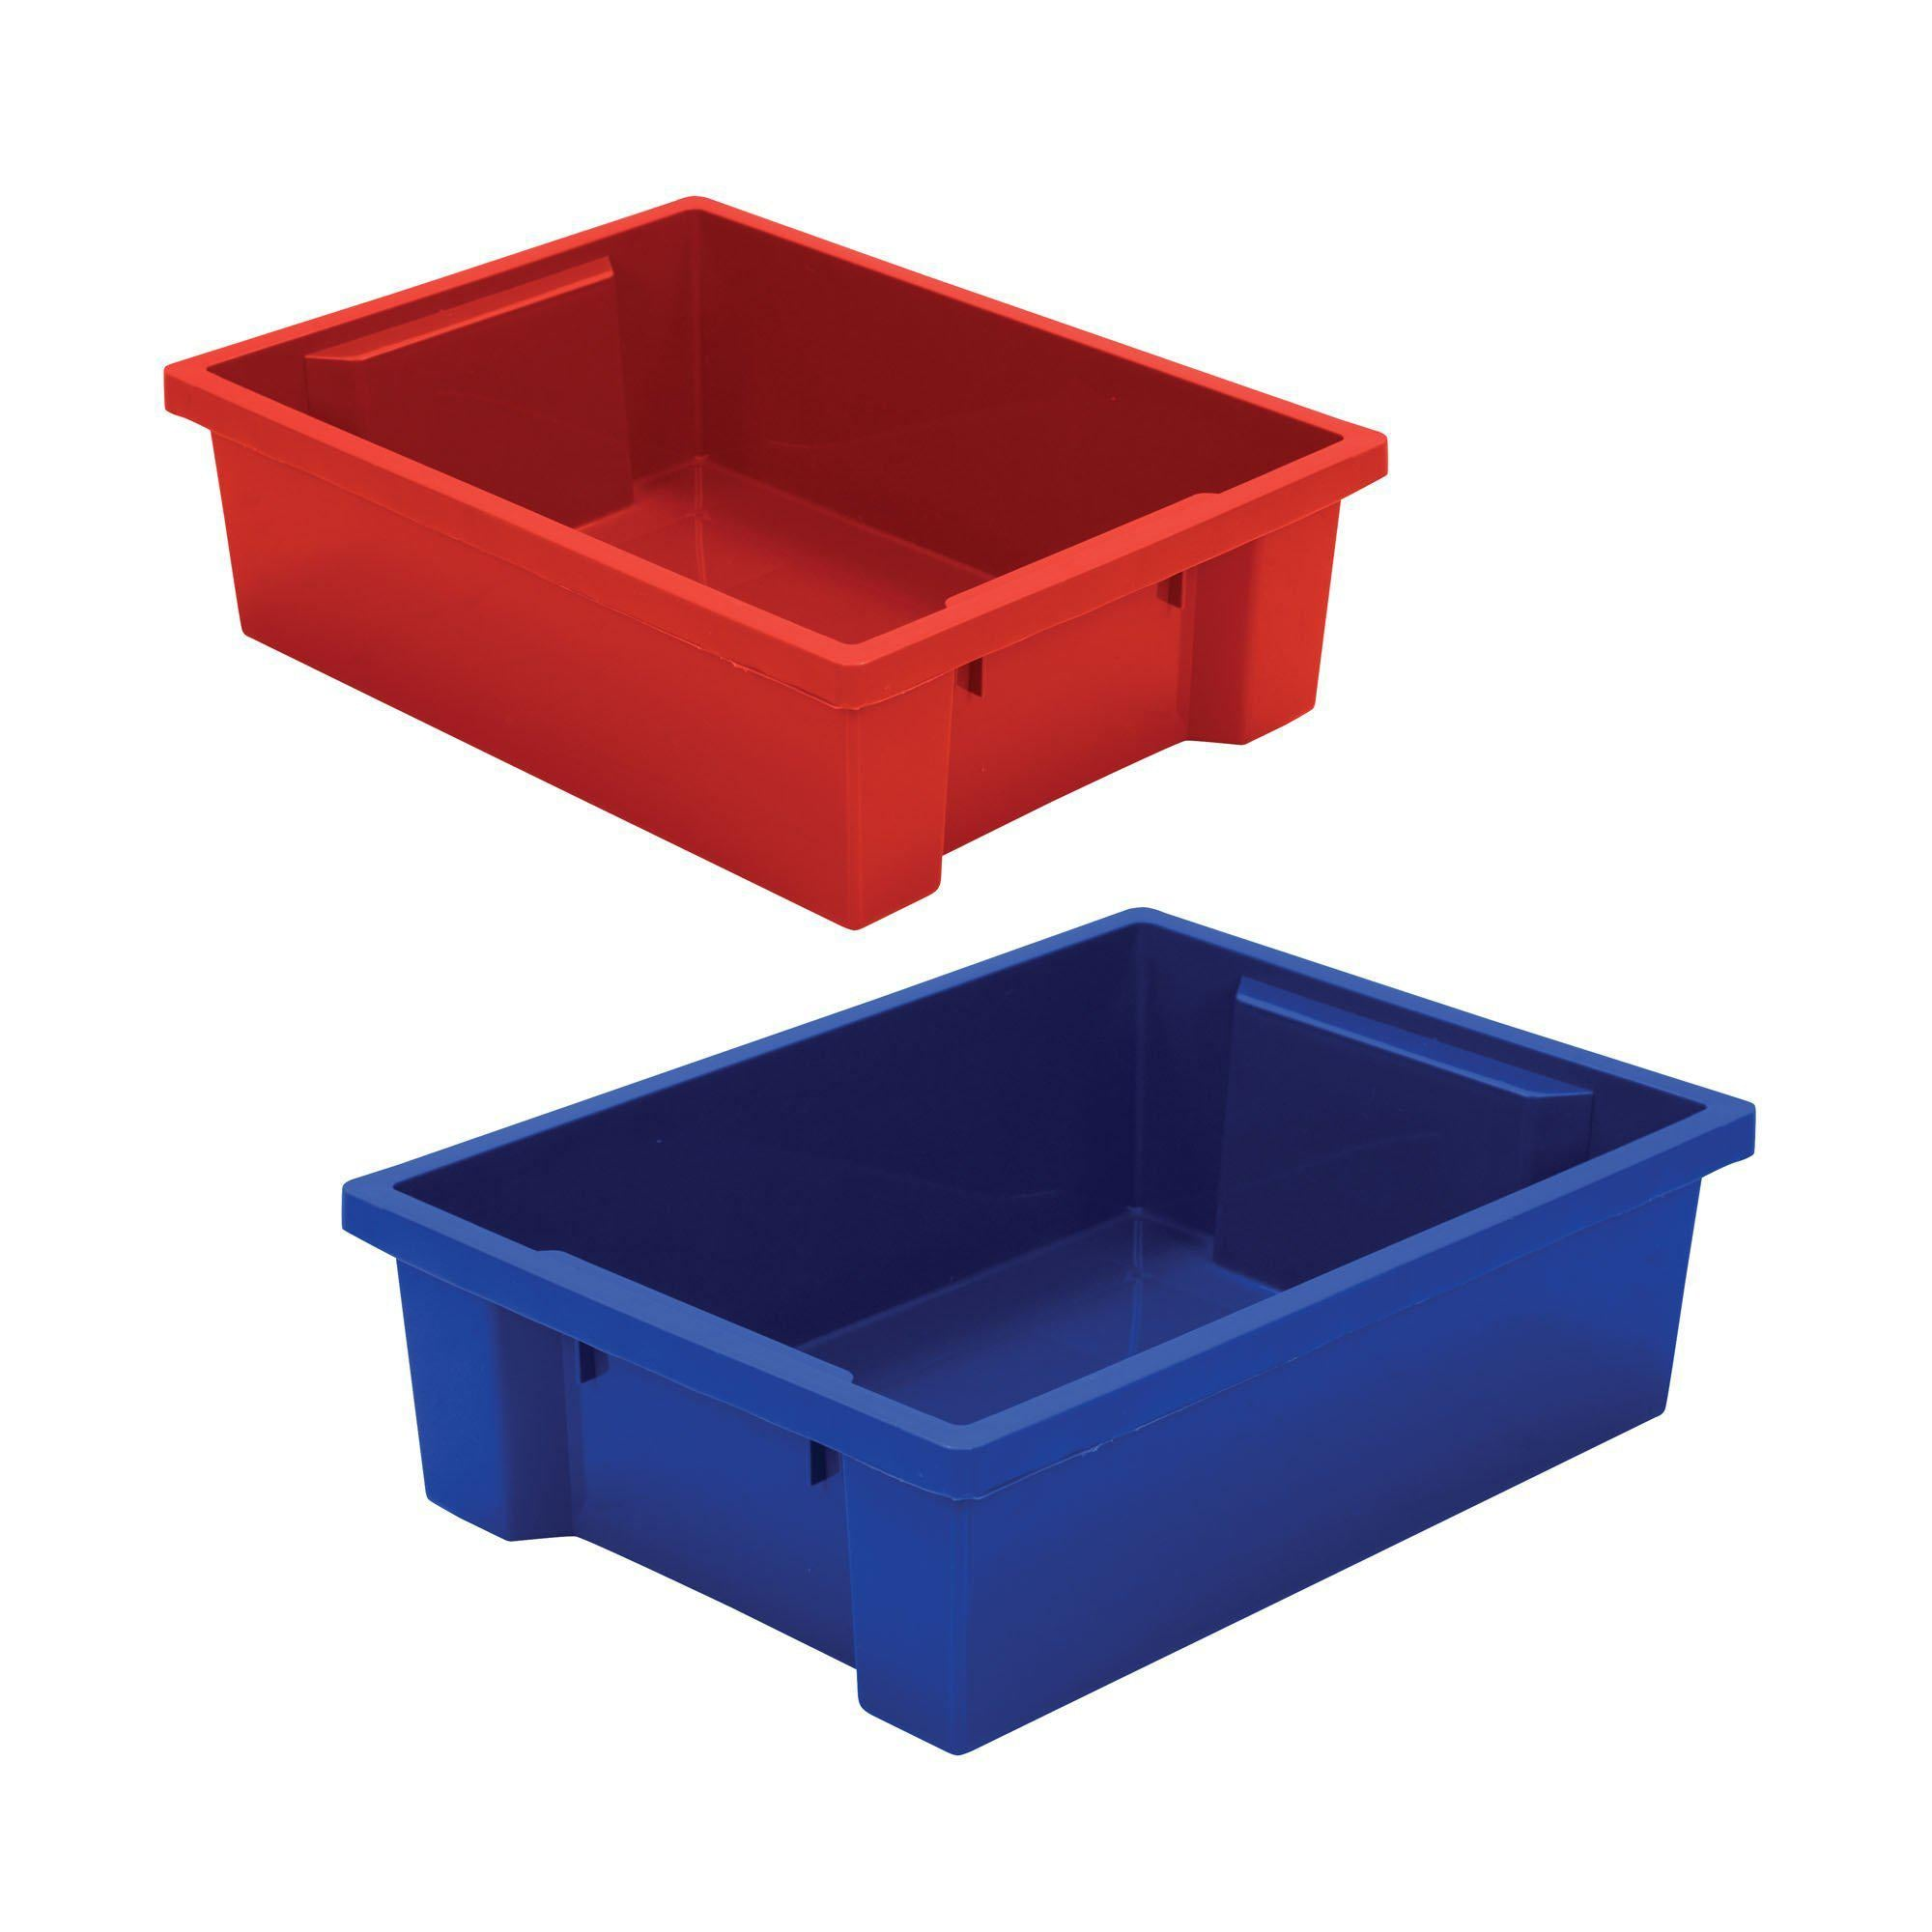 Plastic Storage Tubs-Storage Cabinets & Shelving-Set of 2 (1 Red/1 Blue)-